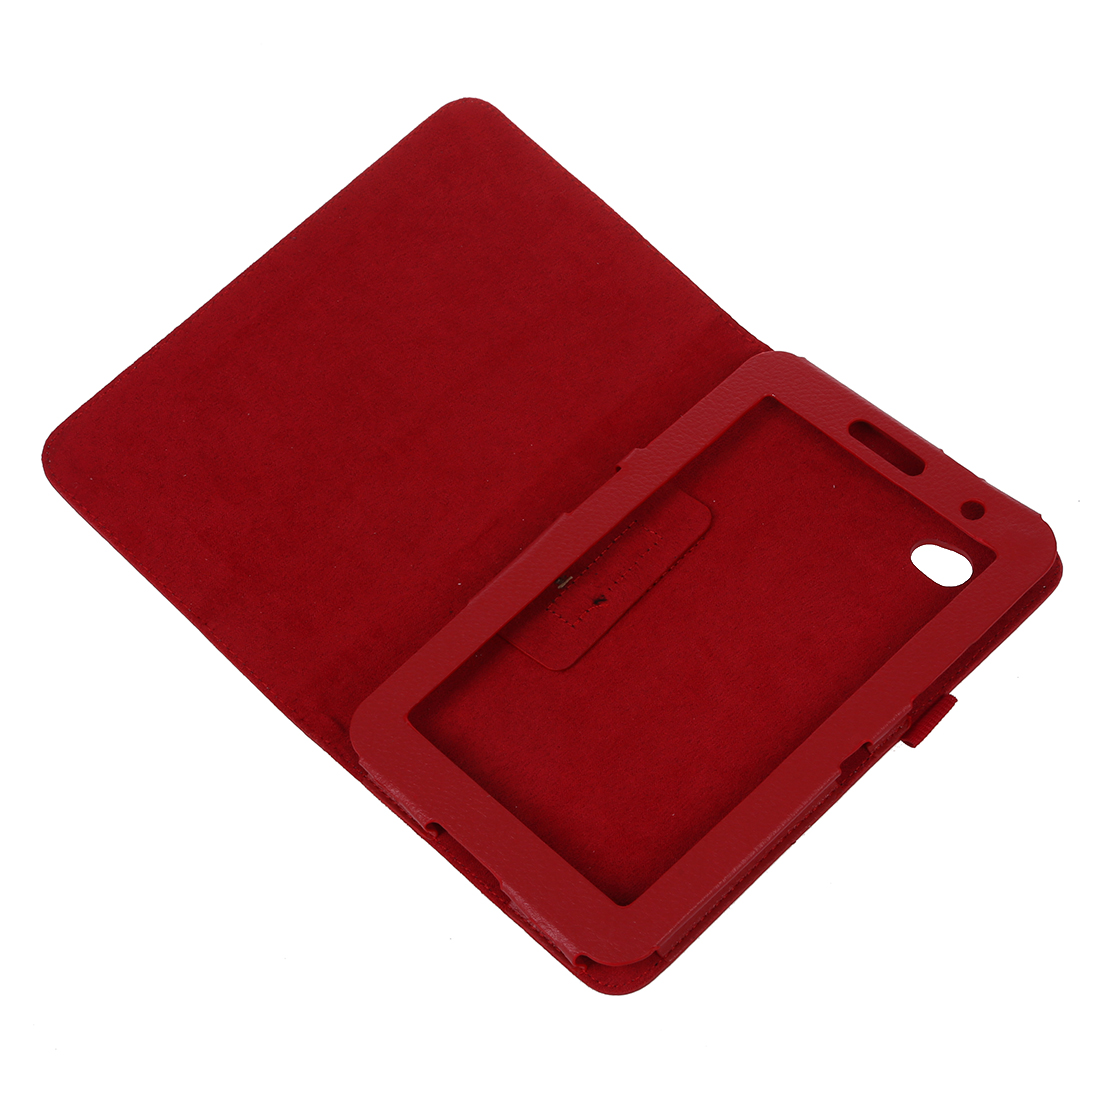 Leather Case for 7-Inch for Samsung Galaxy Tab 2 P3100/P3110 Red XXXX X5S8